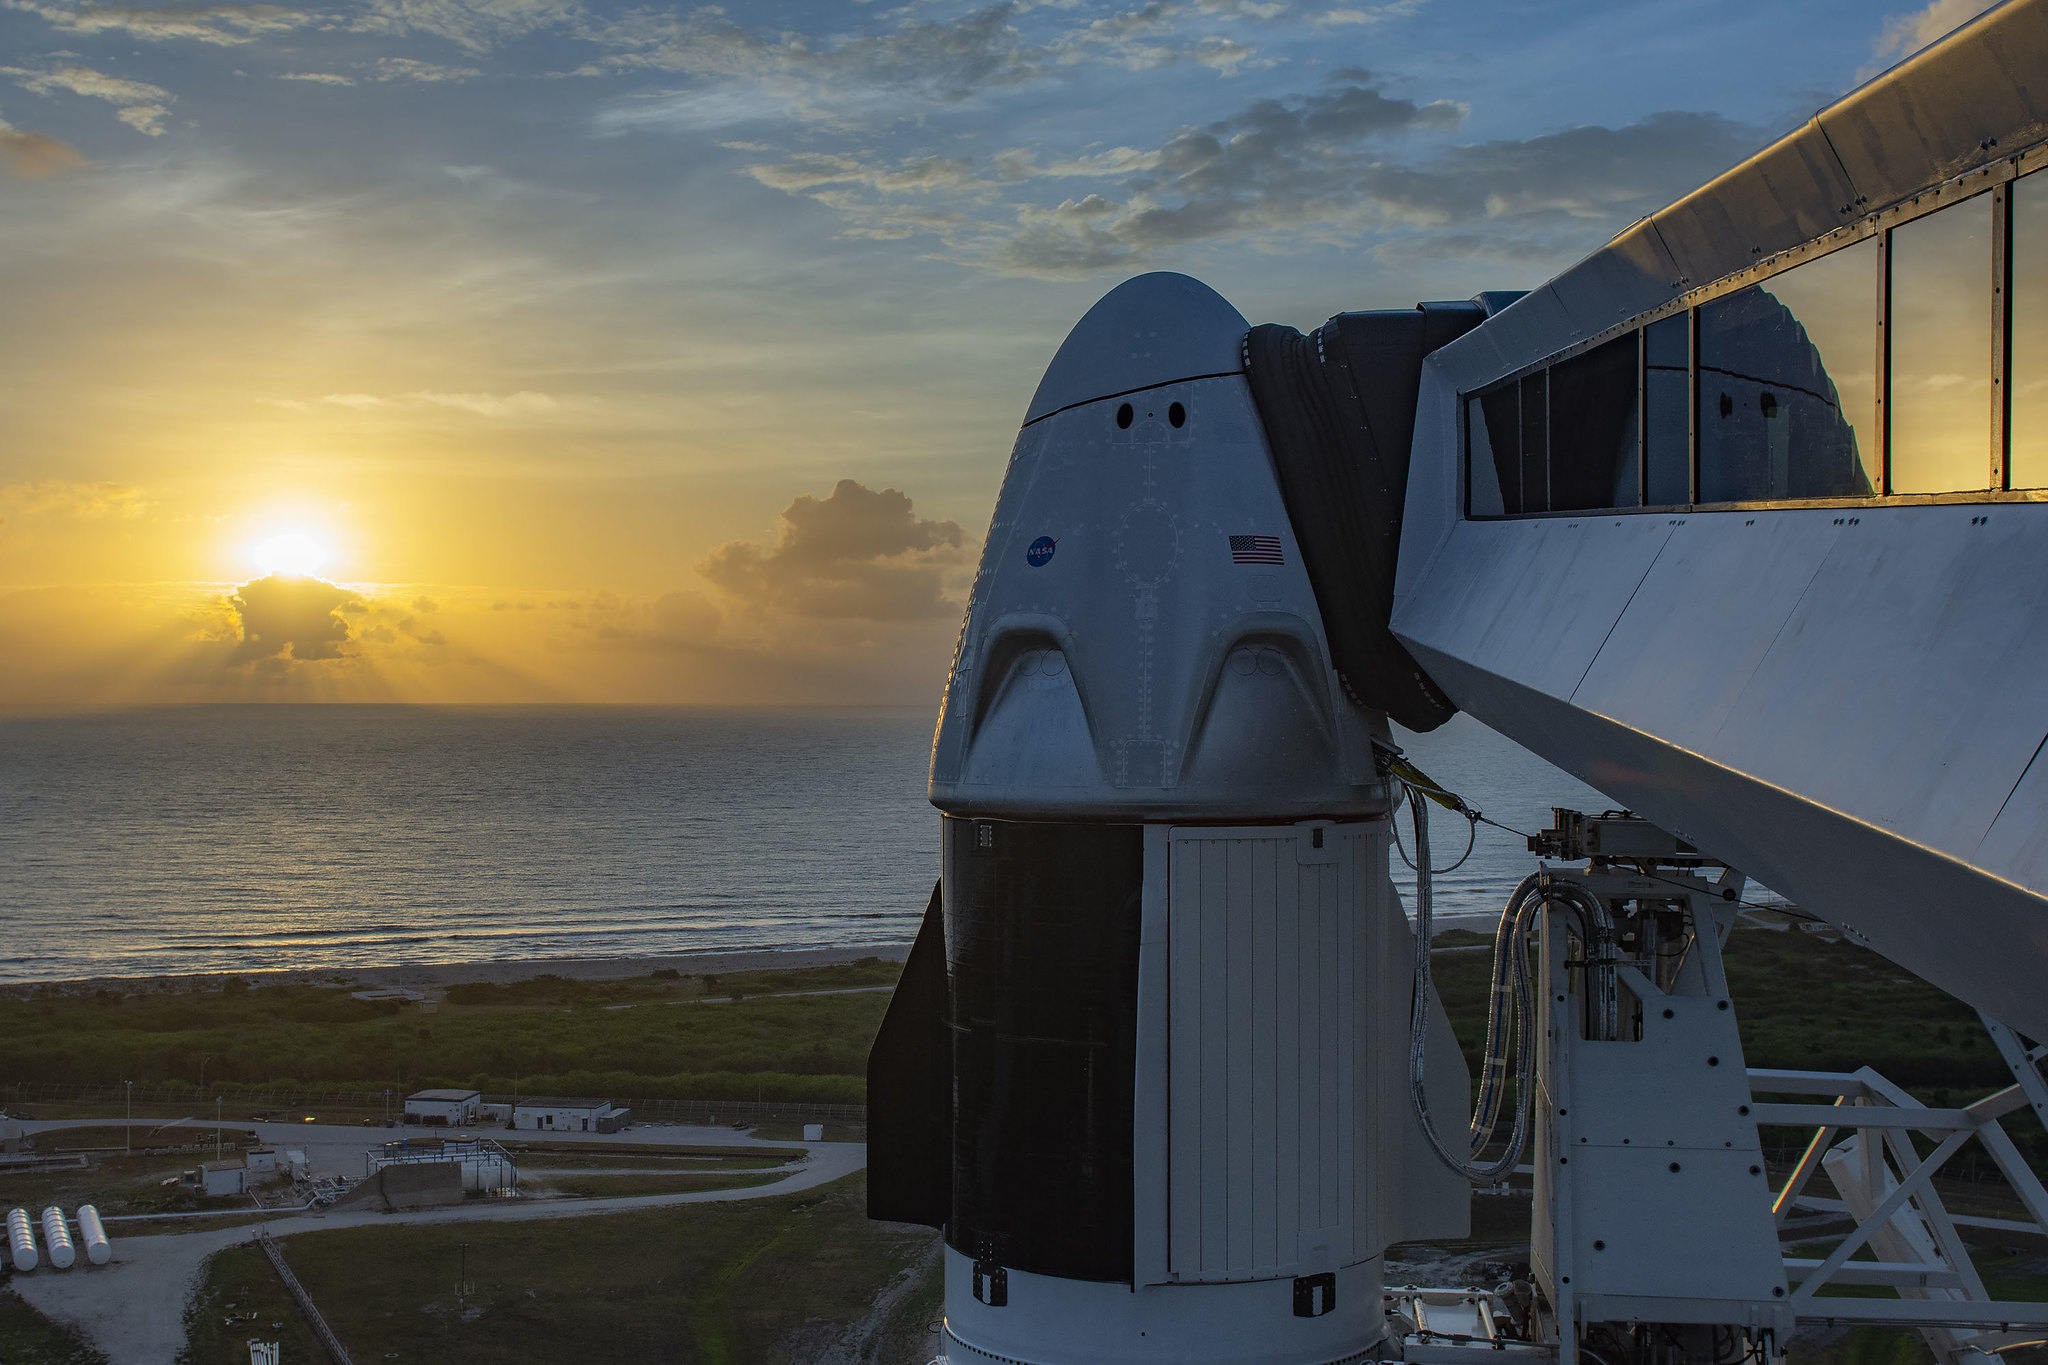 The Sun rises in the background over the water. In the foreground, the sleek gumdrop-shaped Crew Dragon sits atop a rocket connected to a walkway.